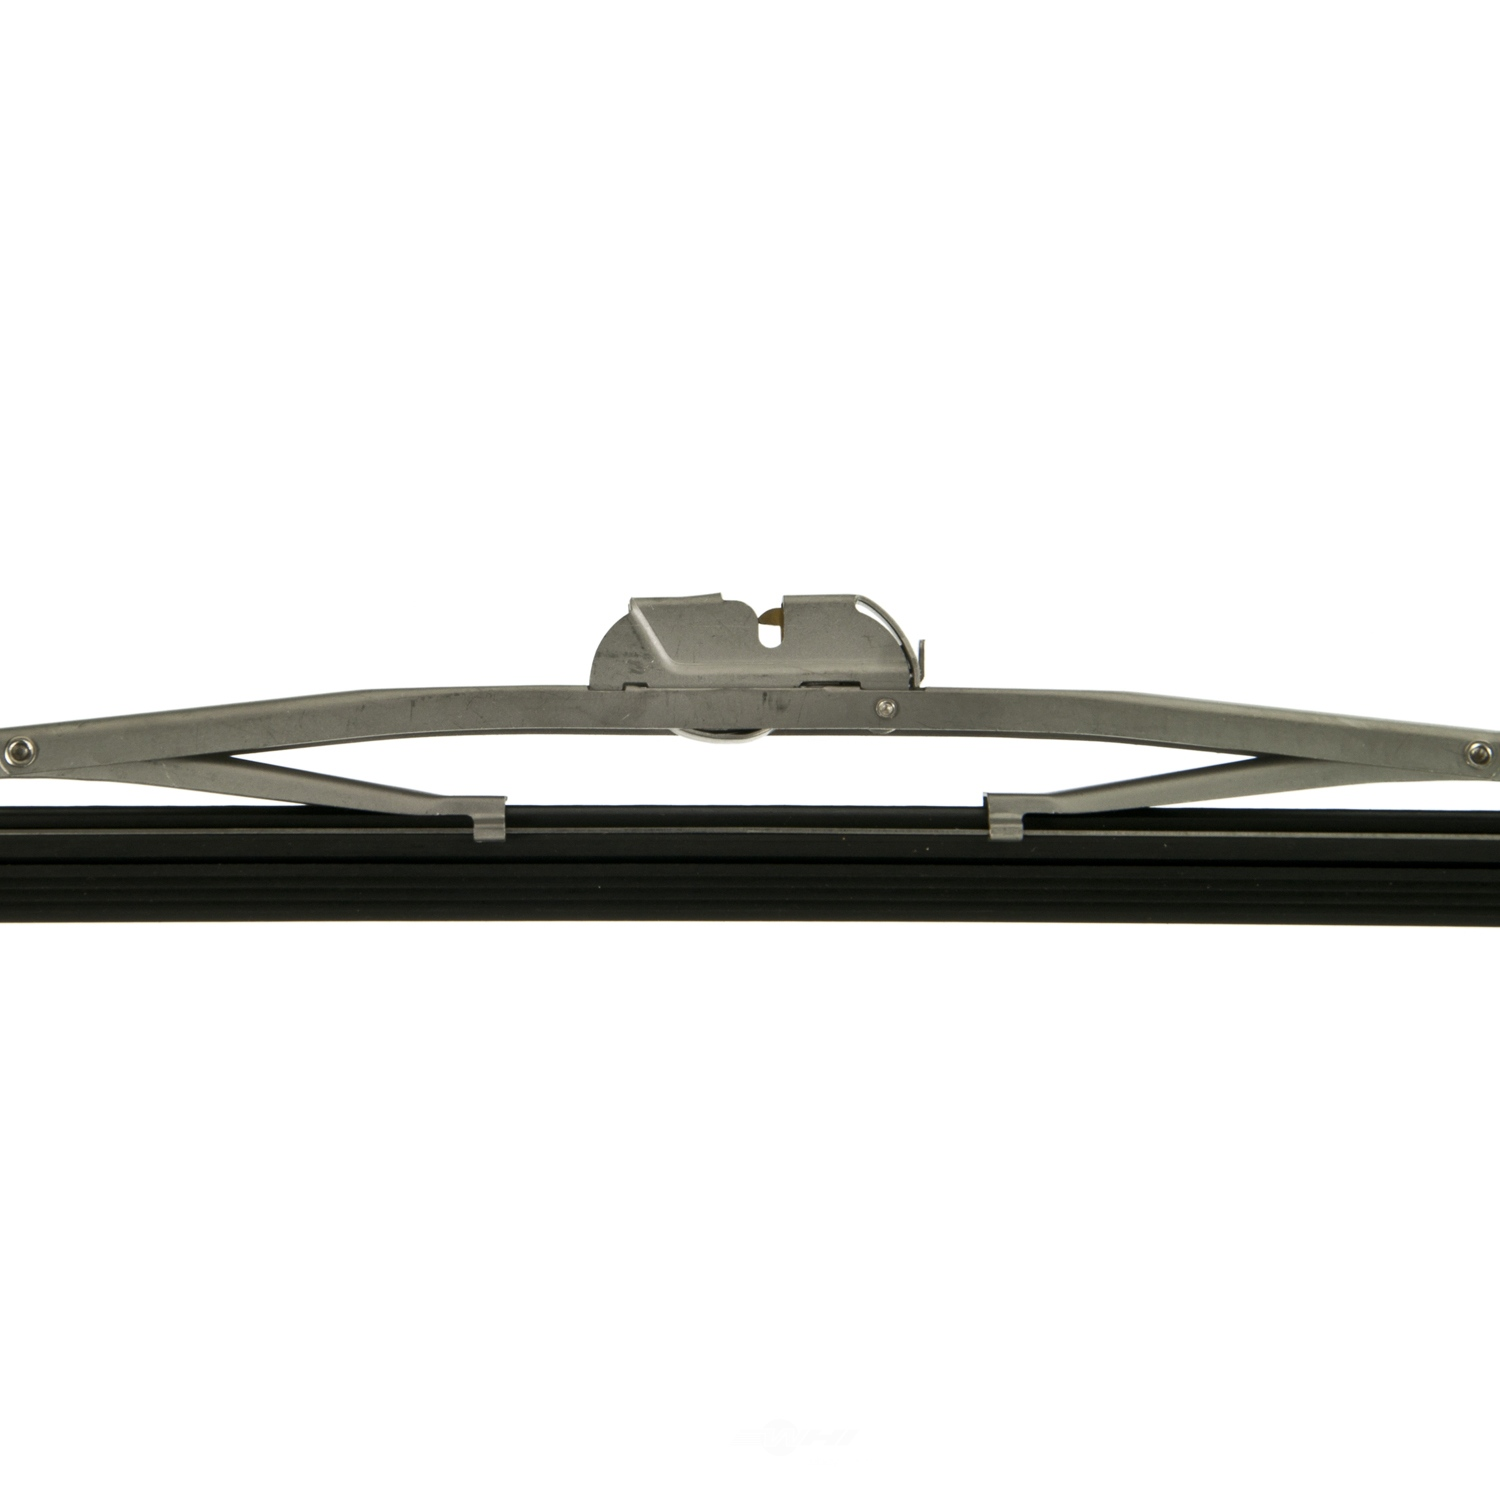 ANCO WIPER PRODUCTS - Vintage Wiper Blade - ANC 20-10